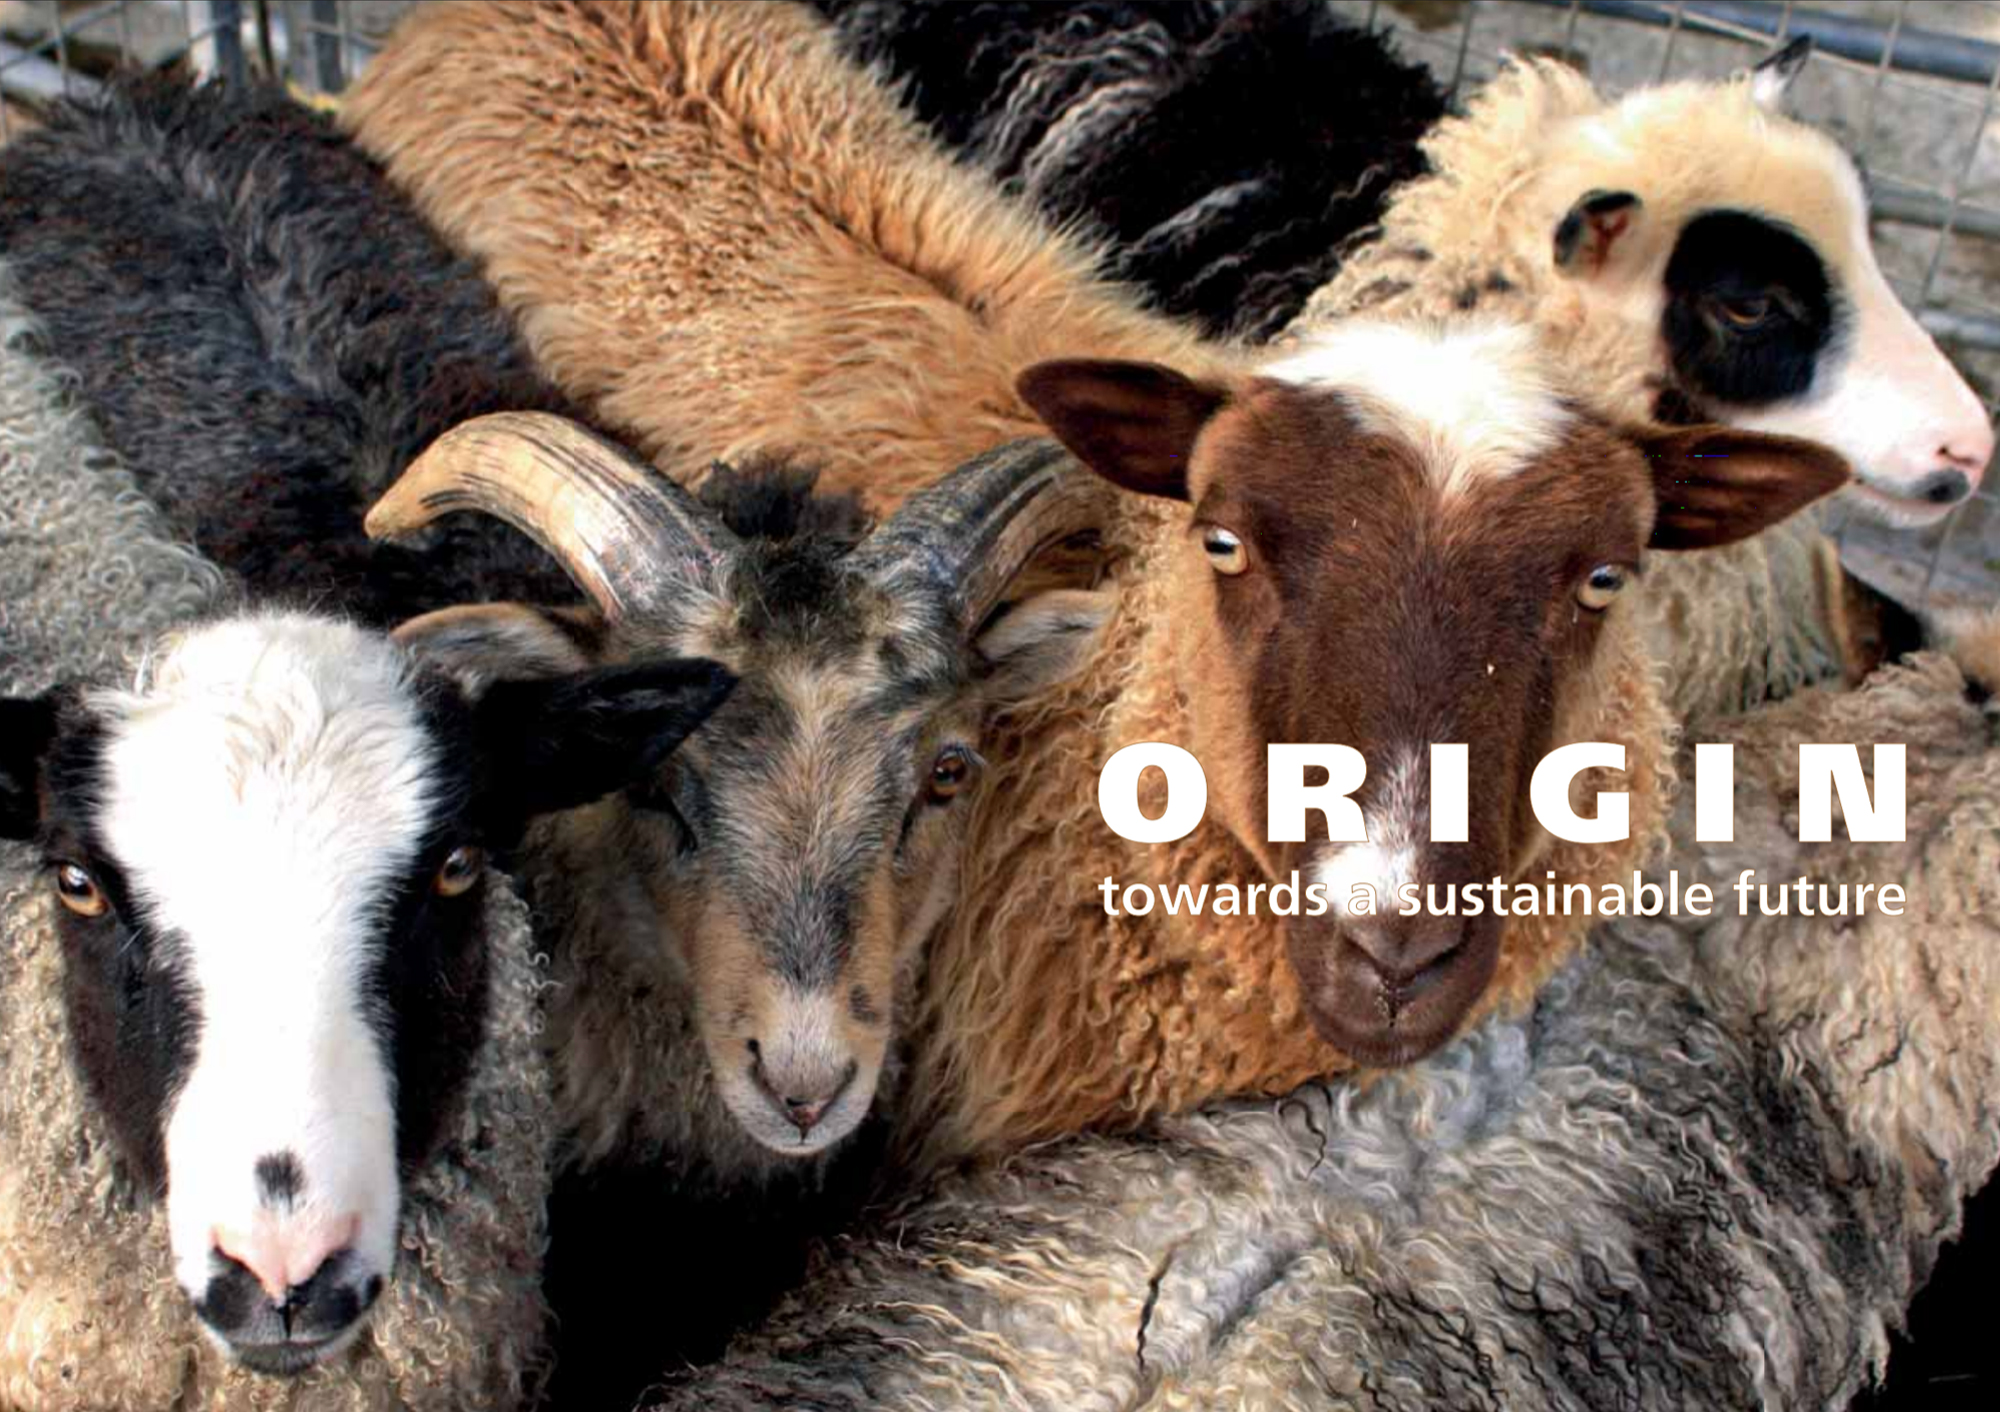 Natural Coloured Sheep - ORIGIN - Tekst - Dansk Wilton - Luxury Carpets